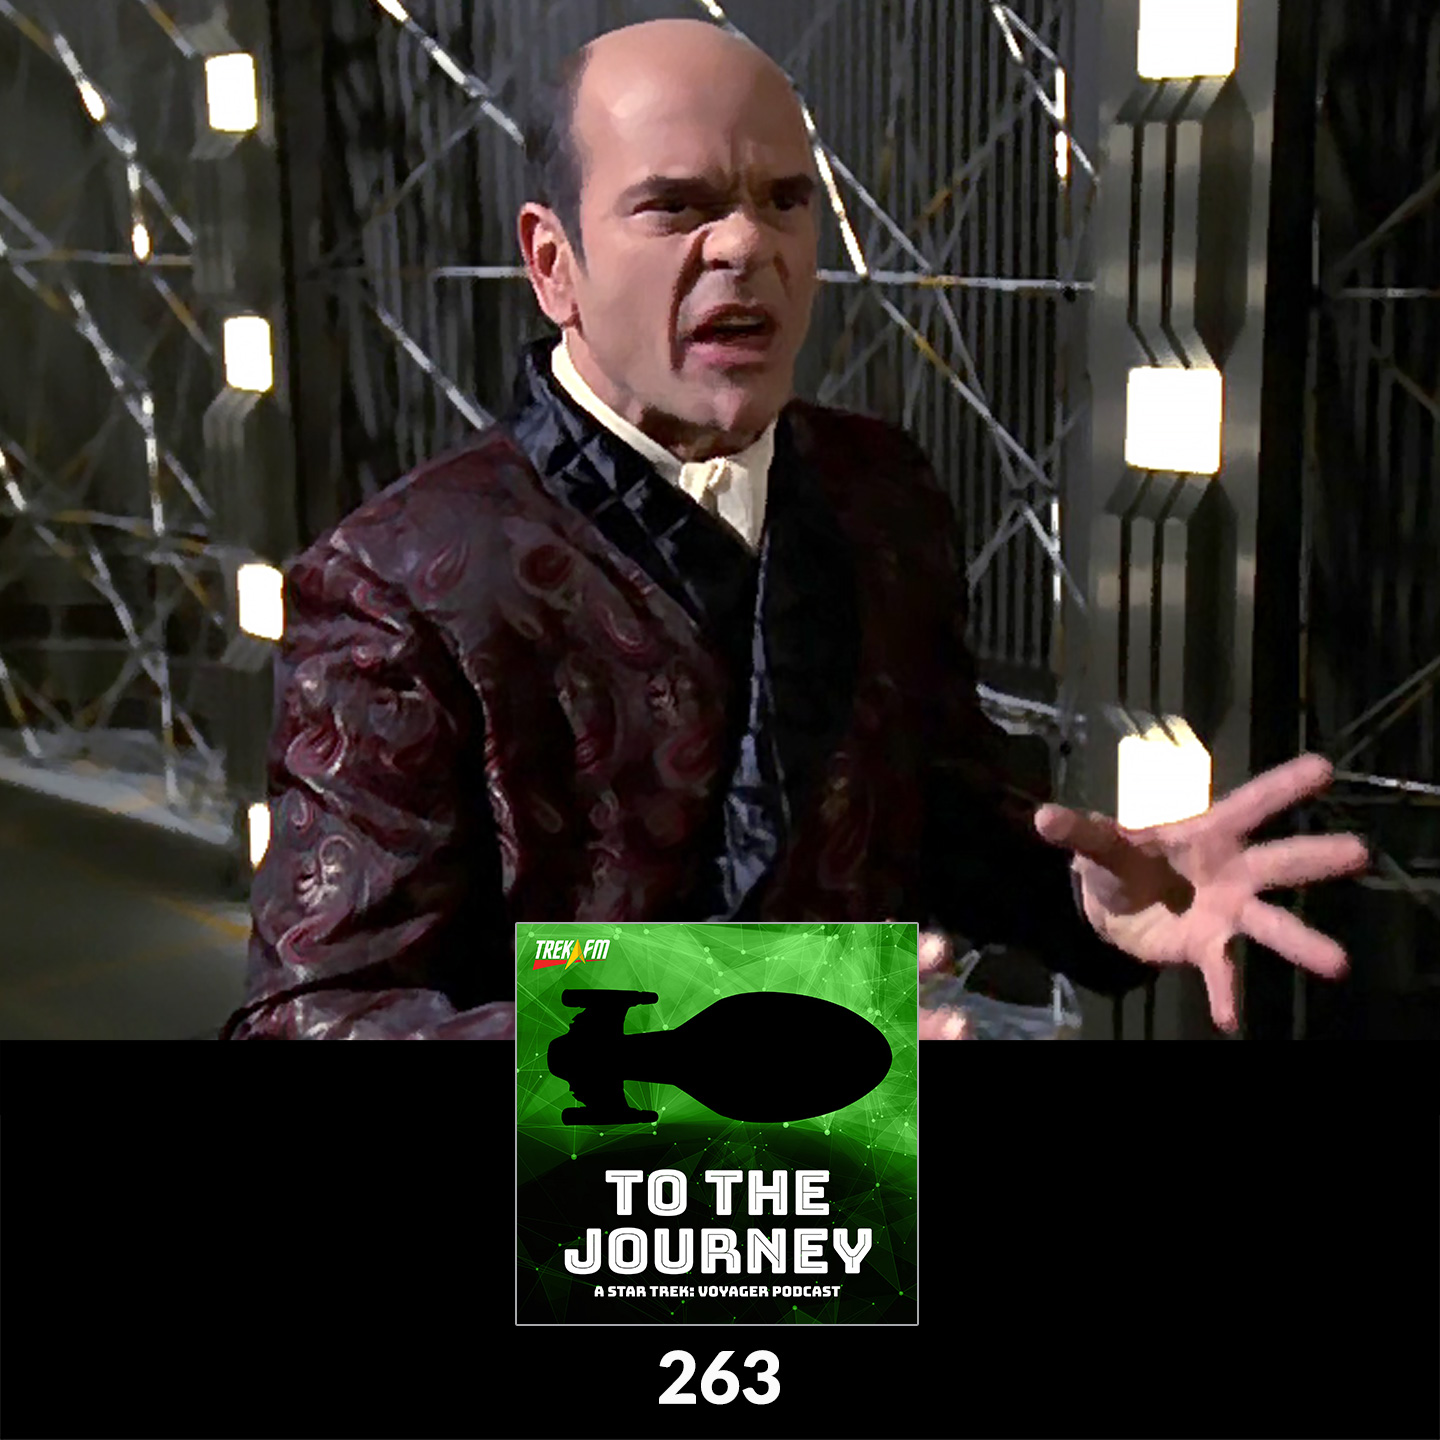 To The Journey 263: Kneel Before Moriarty - Desert Island Episodes - Voyager Season 7.